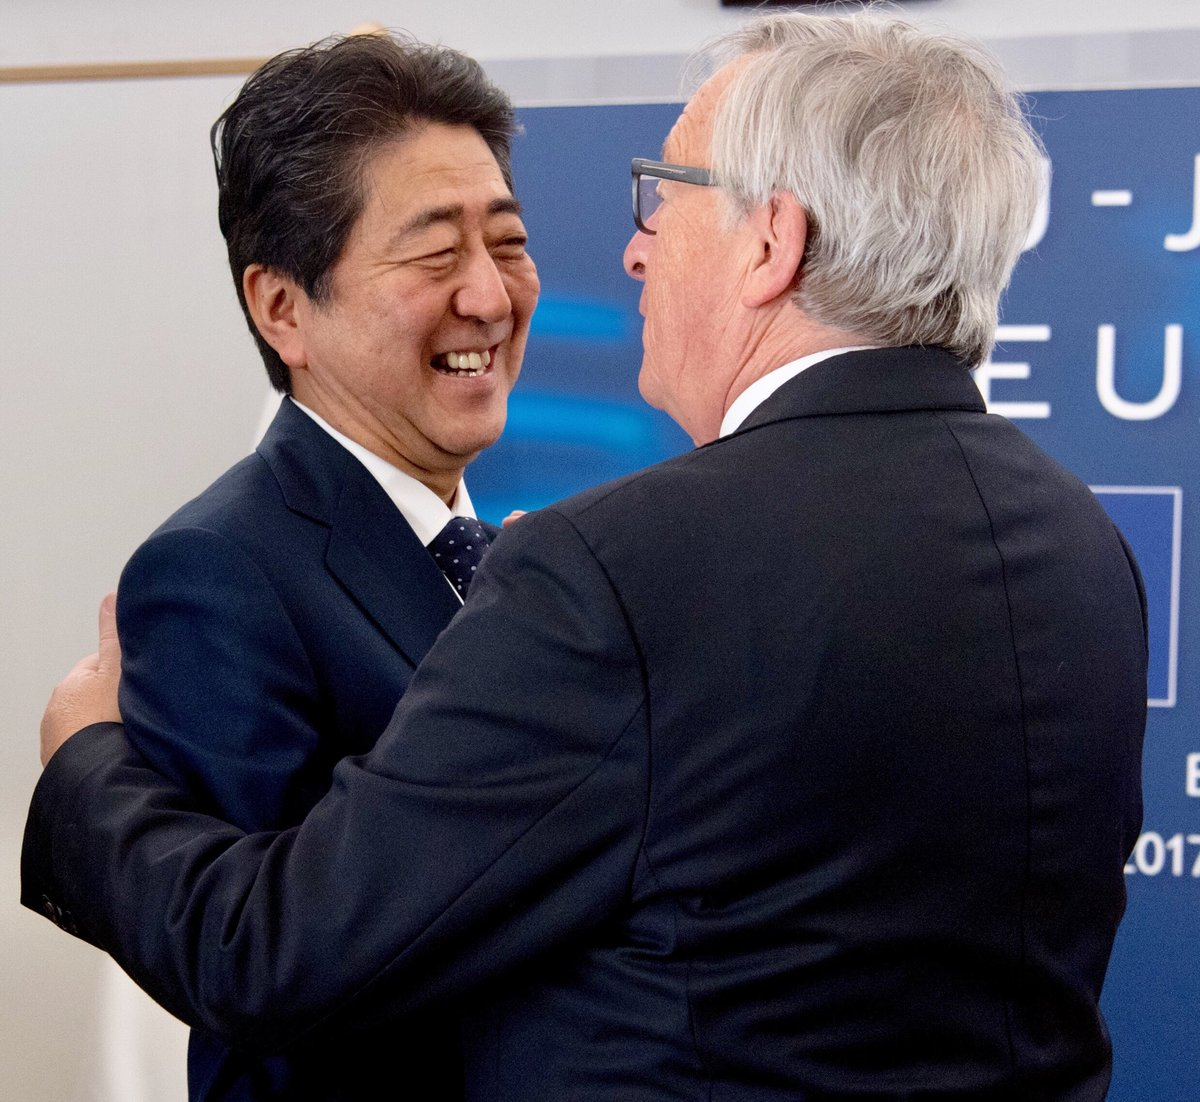 With PM @AbeShinzo, we have just concluded negotiations on reciprocal #data adequacy. The #EU and #Japan will create the world's largest area of safe data flows. We are shaping global standards and upholding the fundamental right of #dataProtectionProhttps://t.co/lqfKUeELultection.""